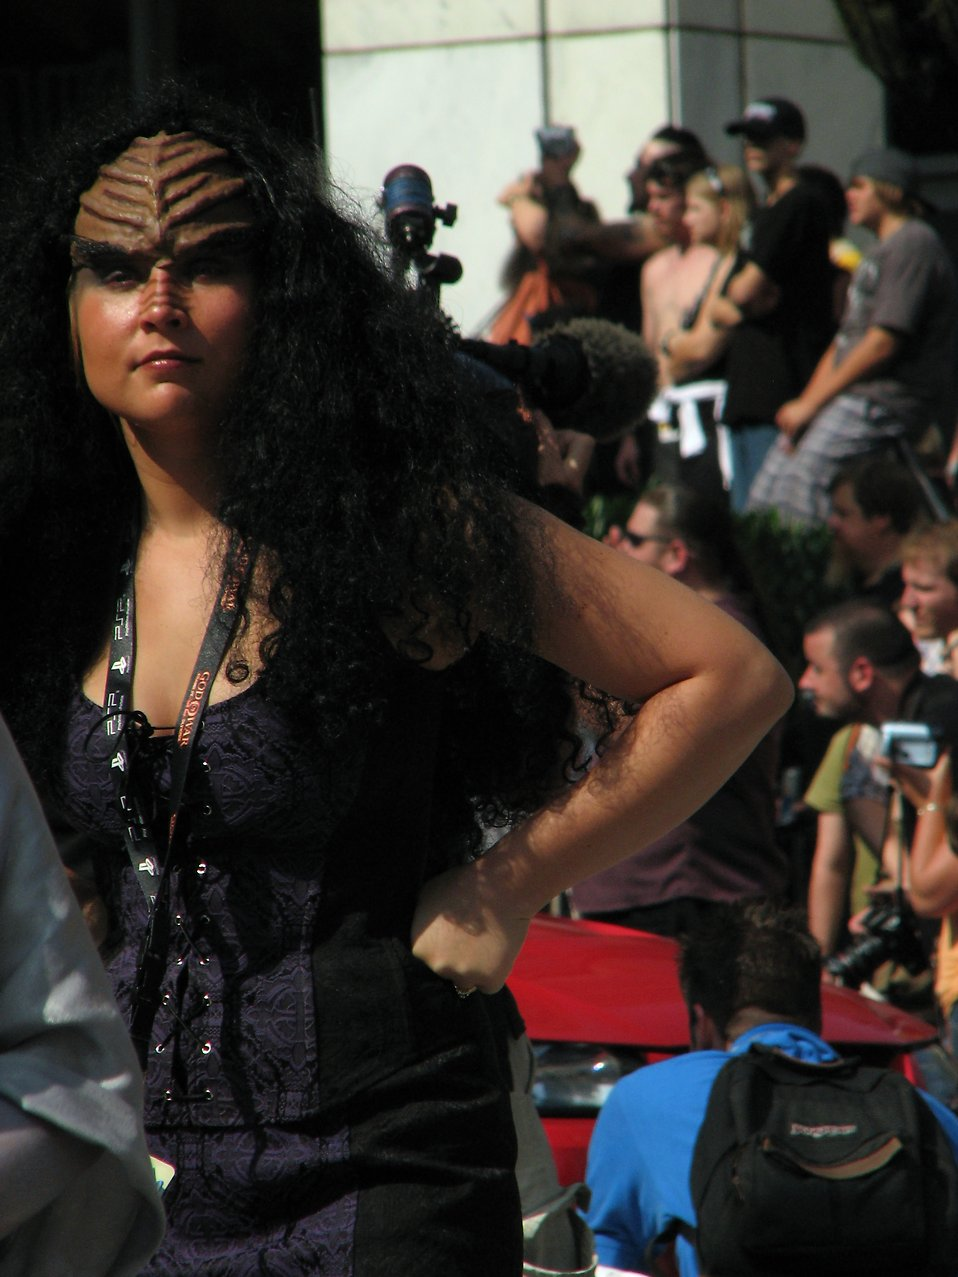 A Klingon costumed woman in the 2008 Dragoncon parade : Free Stock Photo